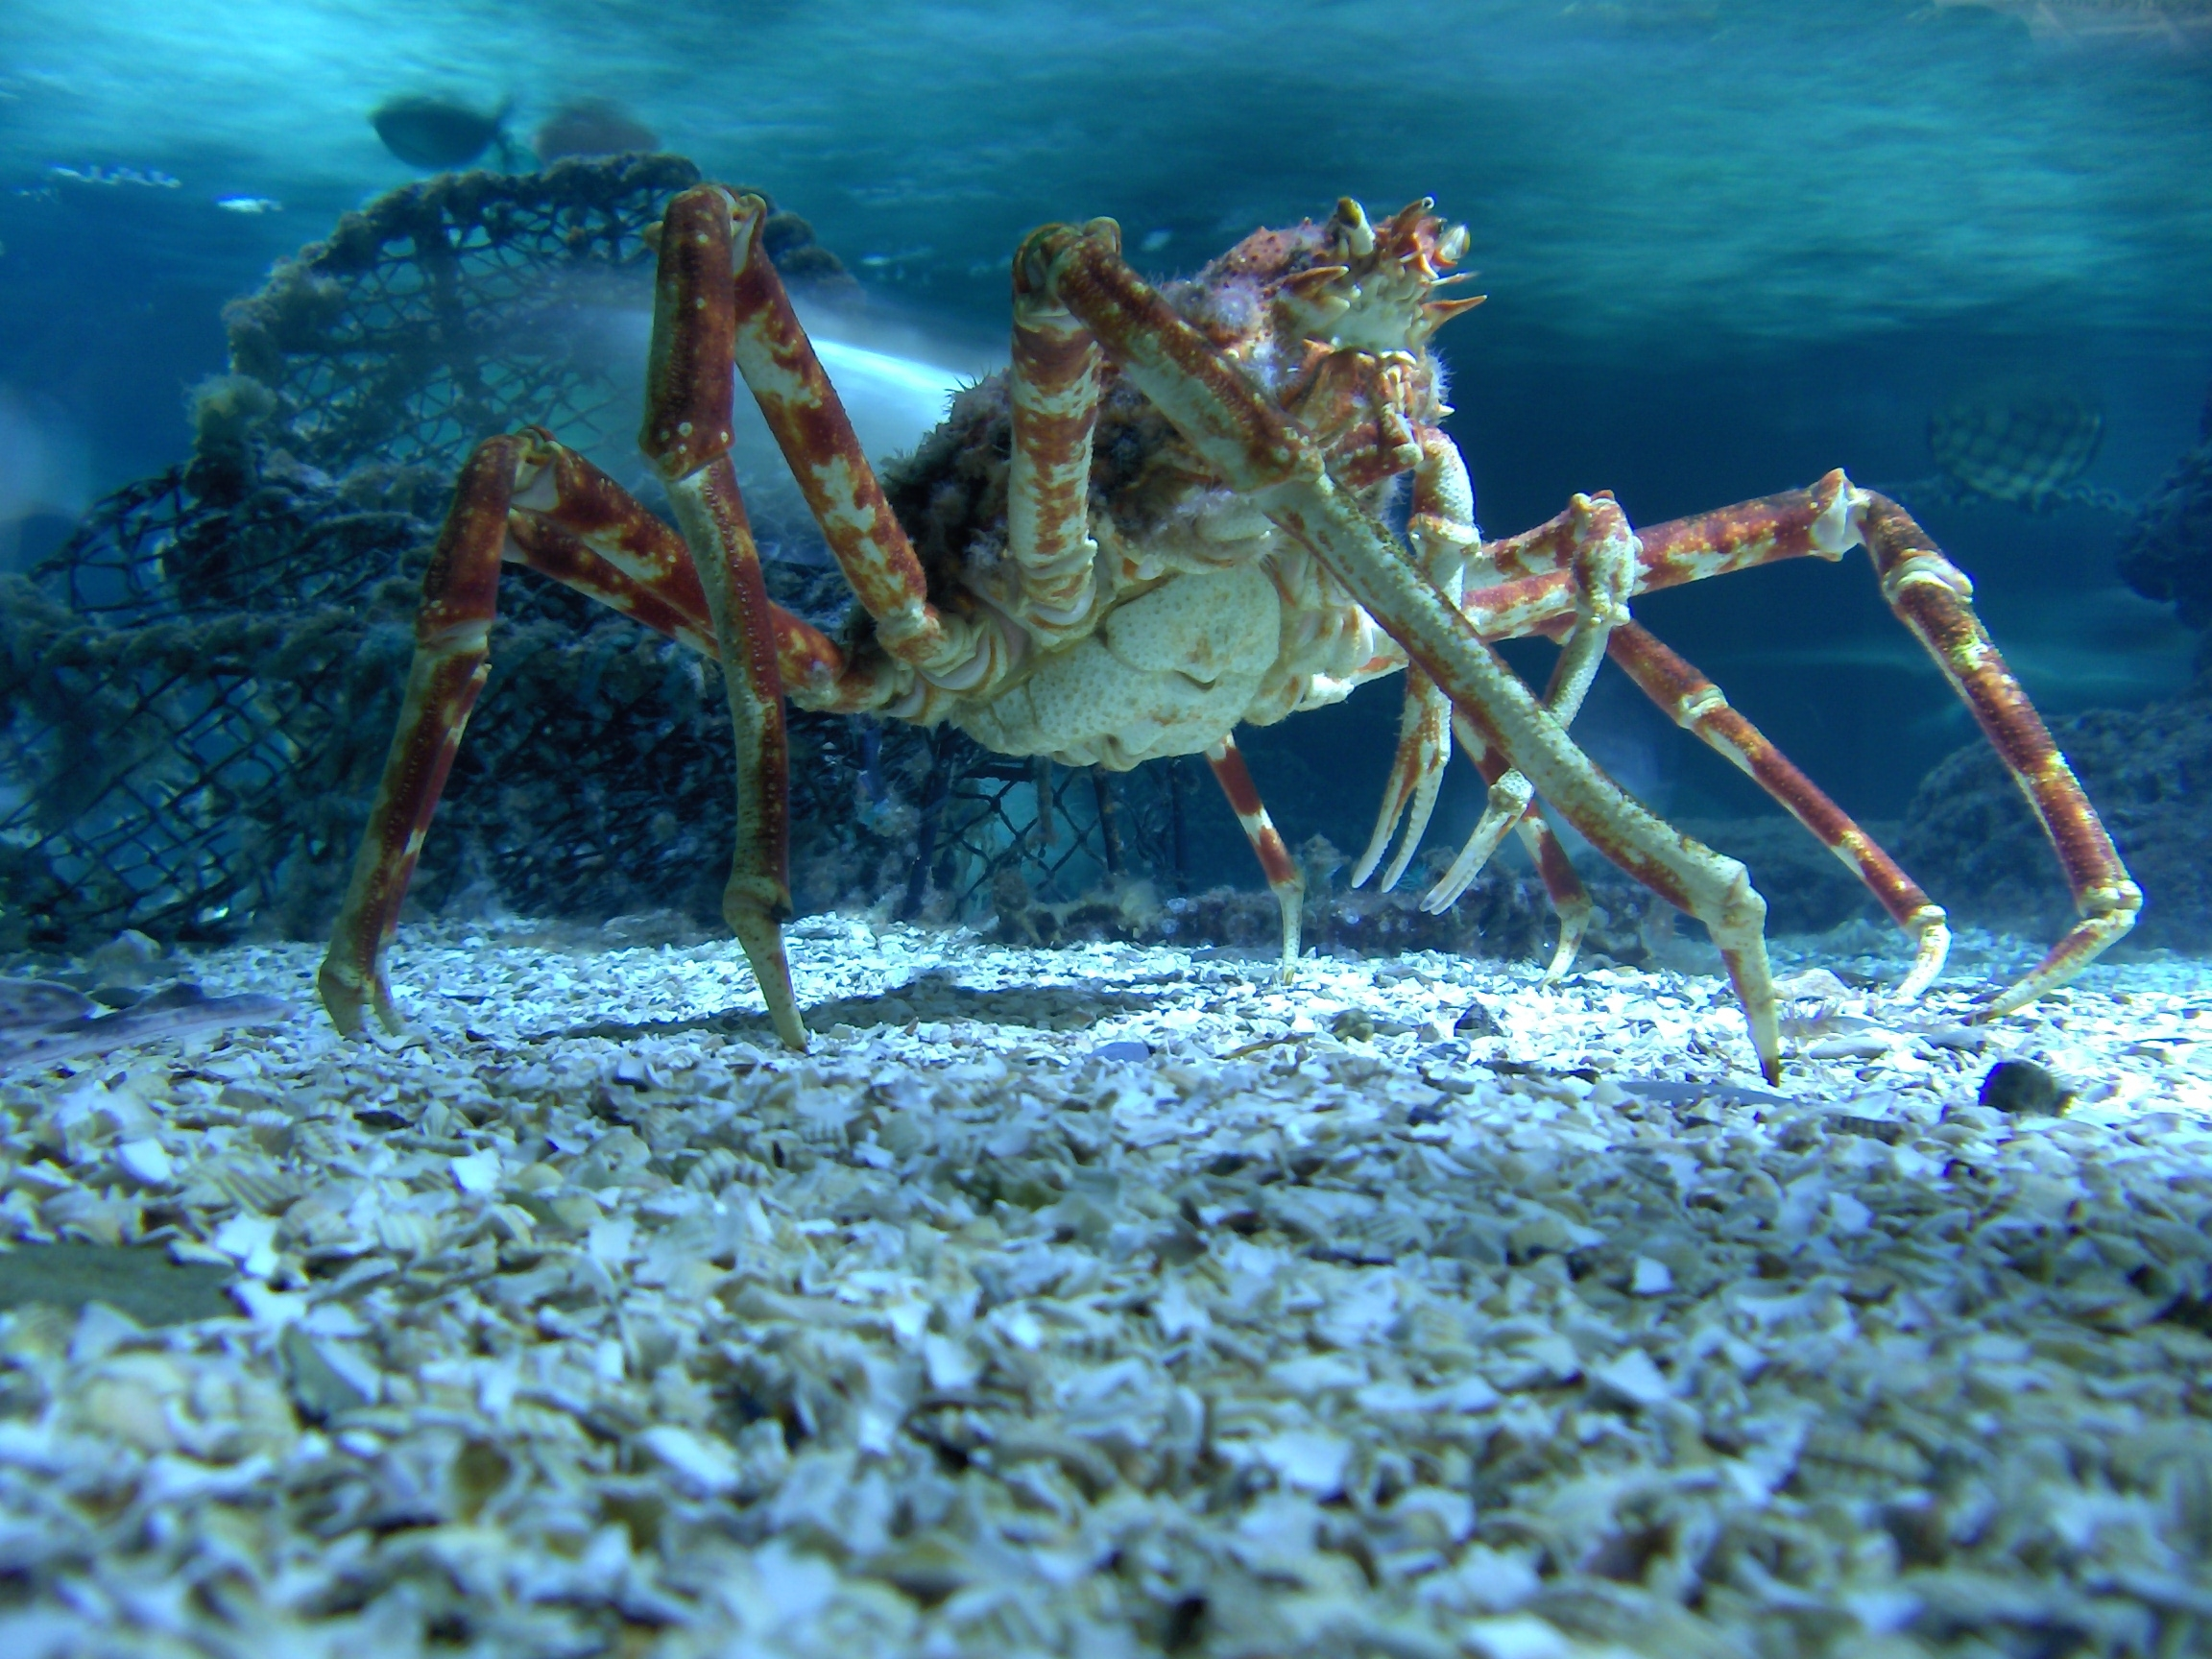 worlds largest crustacean giant spider crab essay